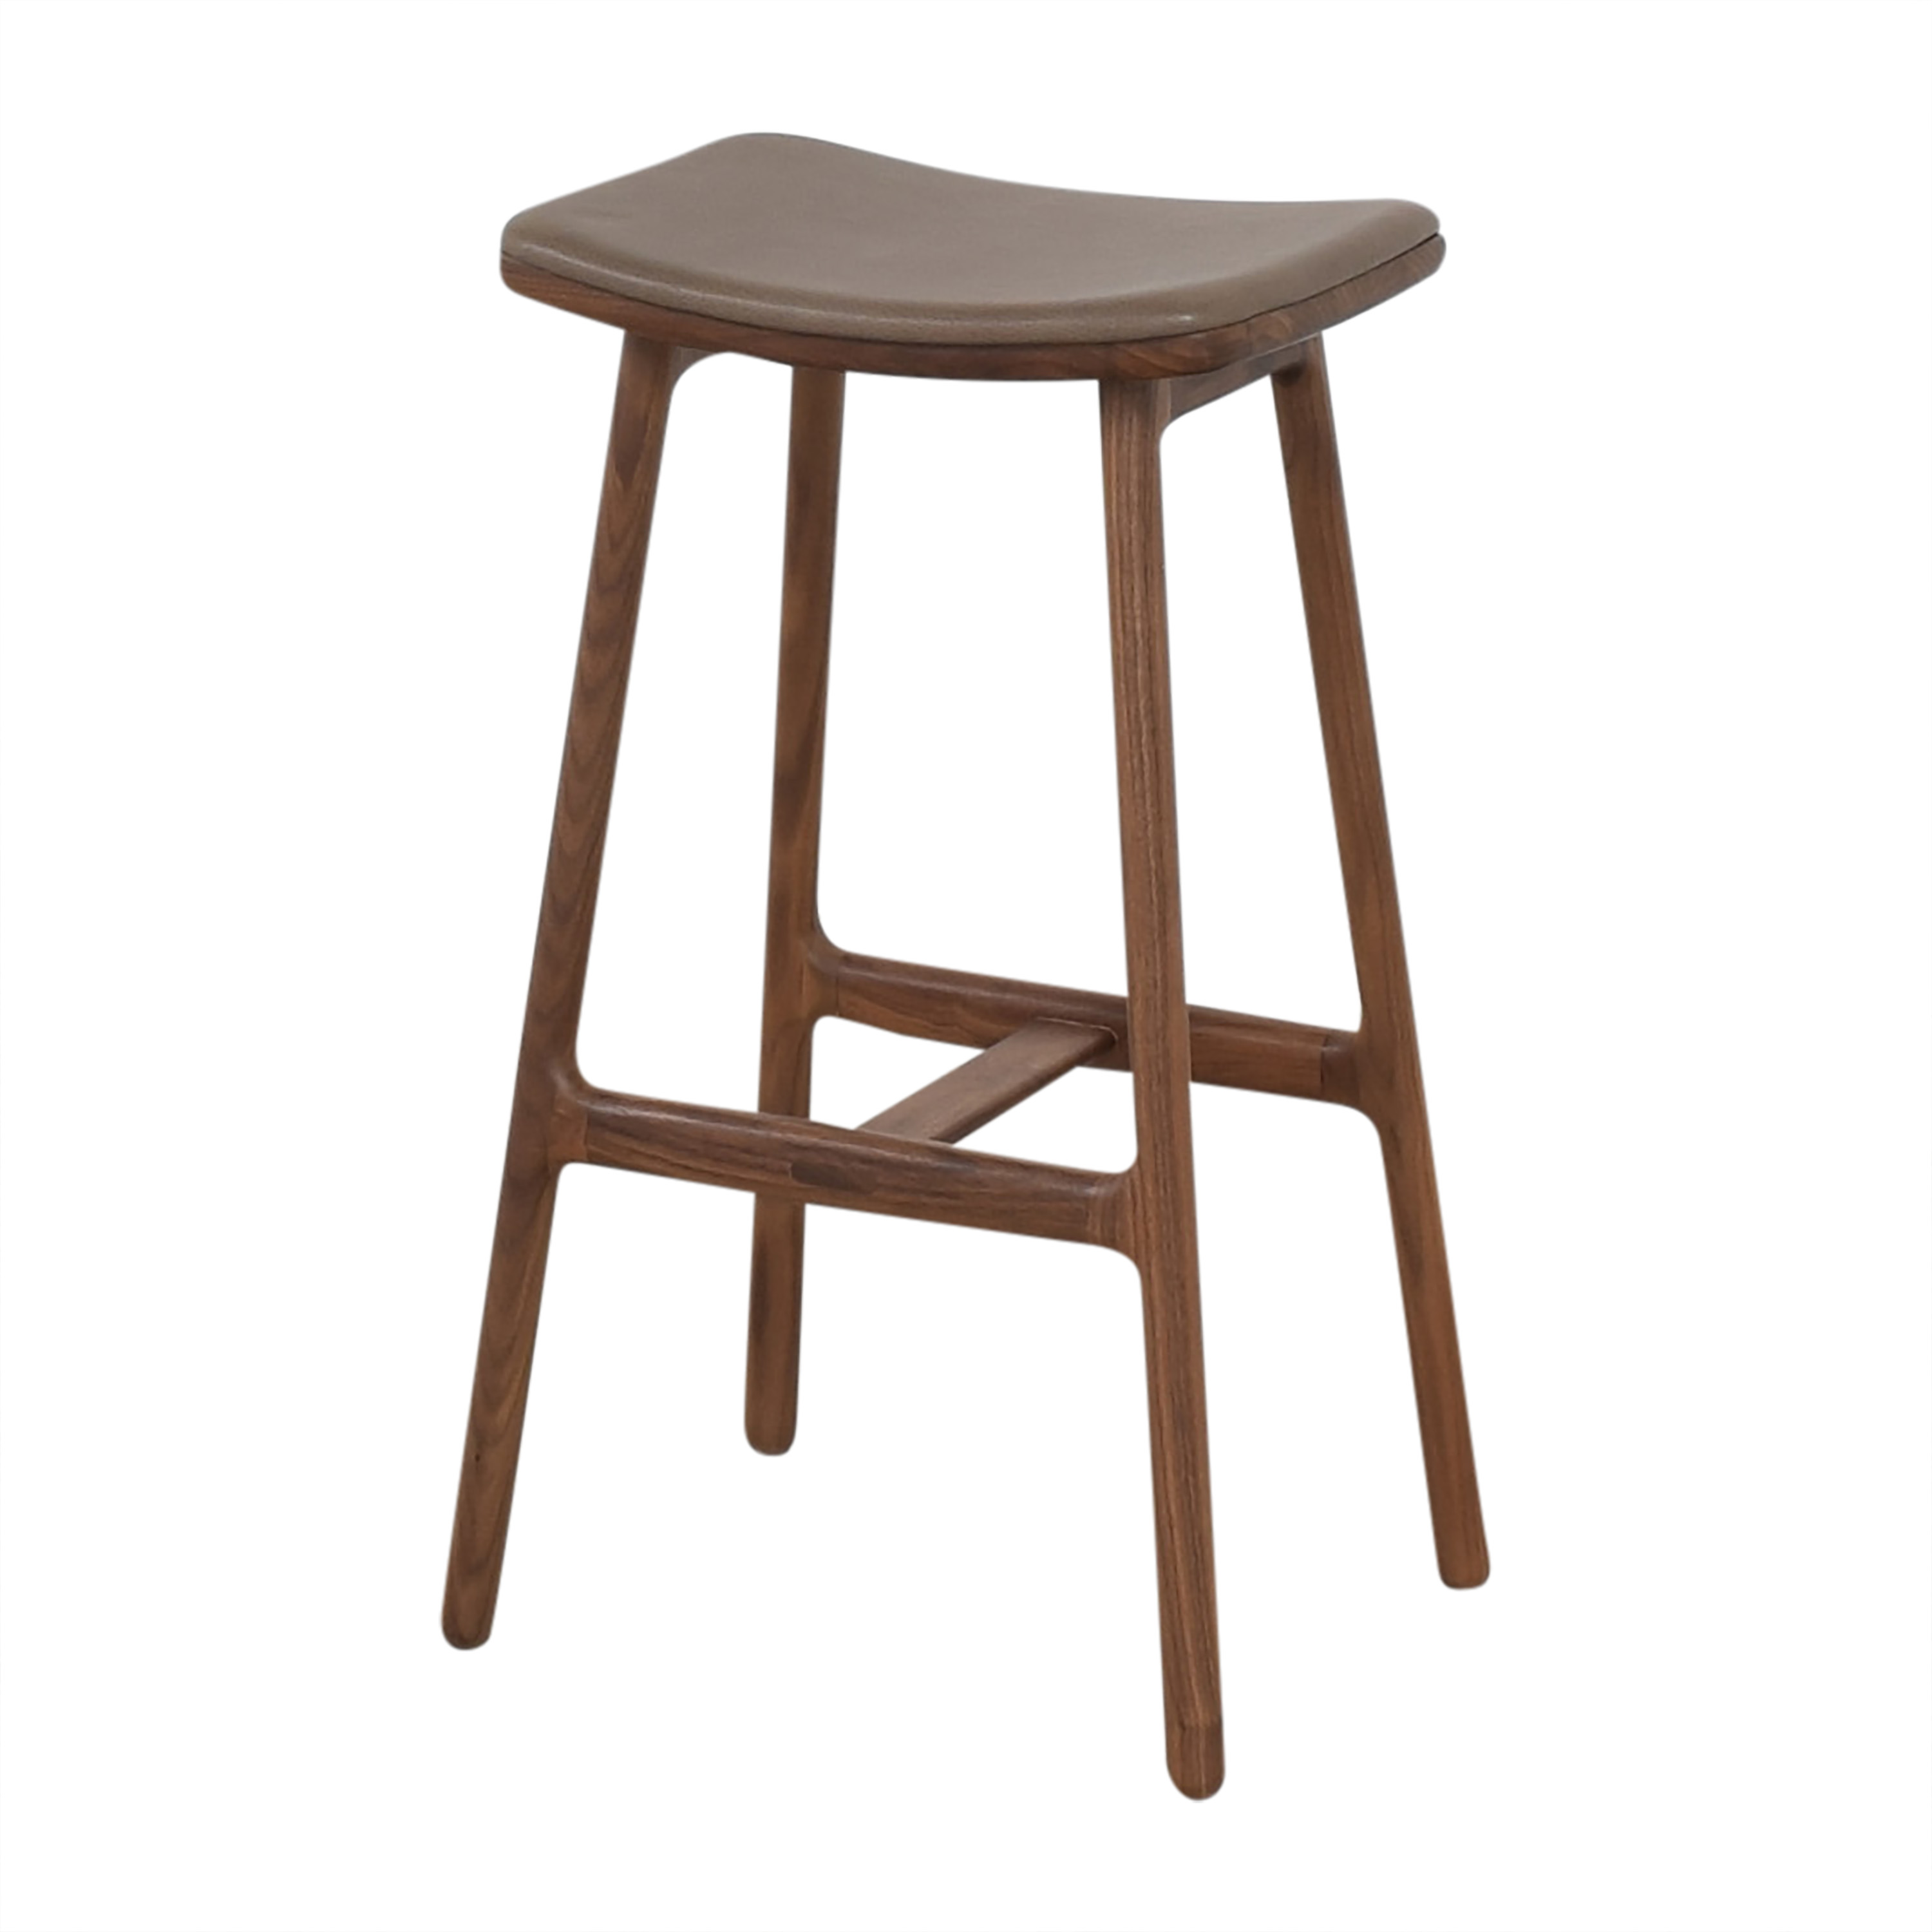 Article Article Esse Canyon Counter Stools price